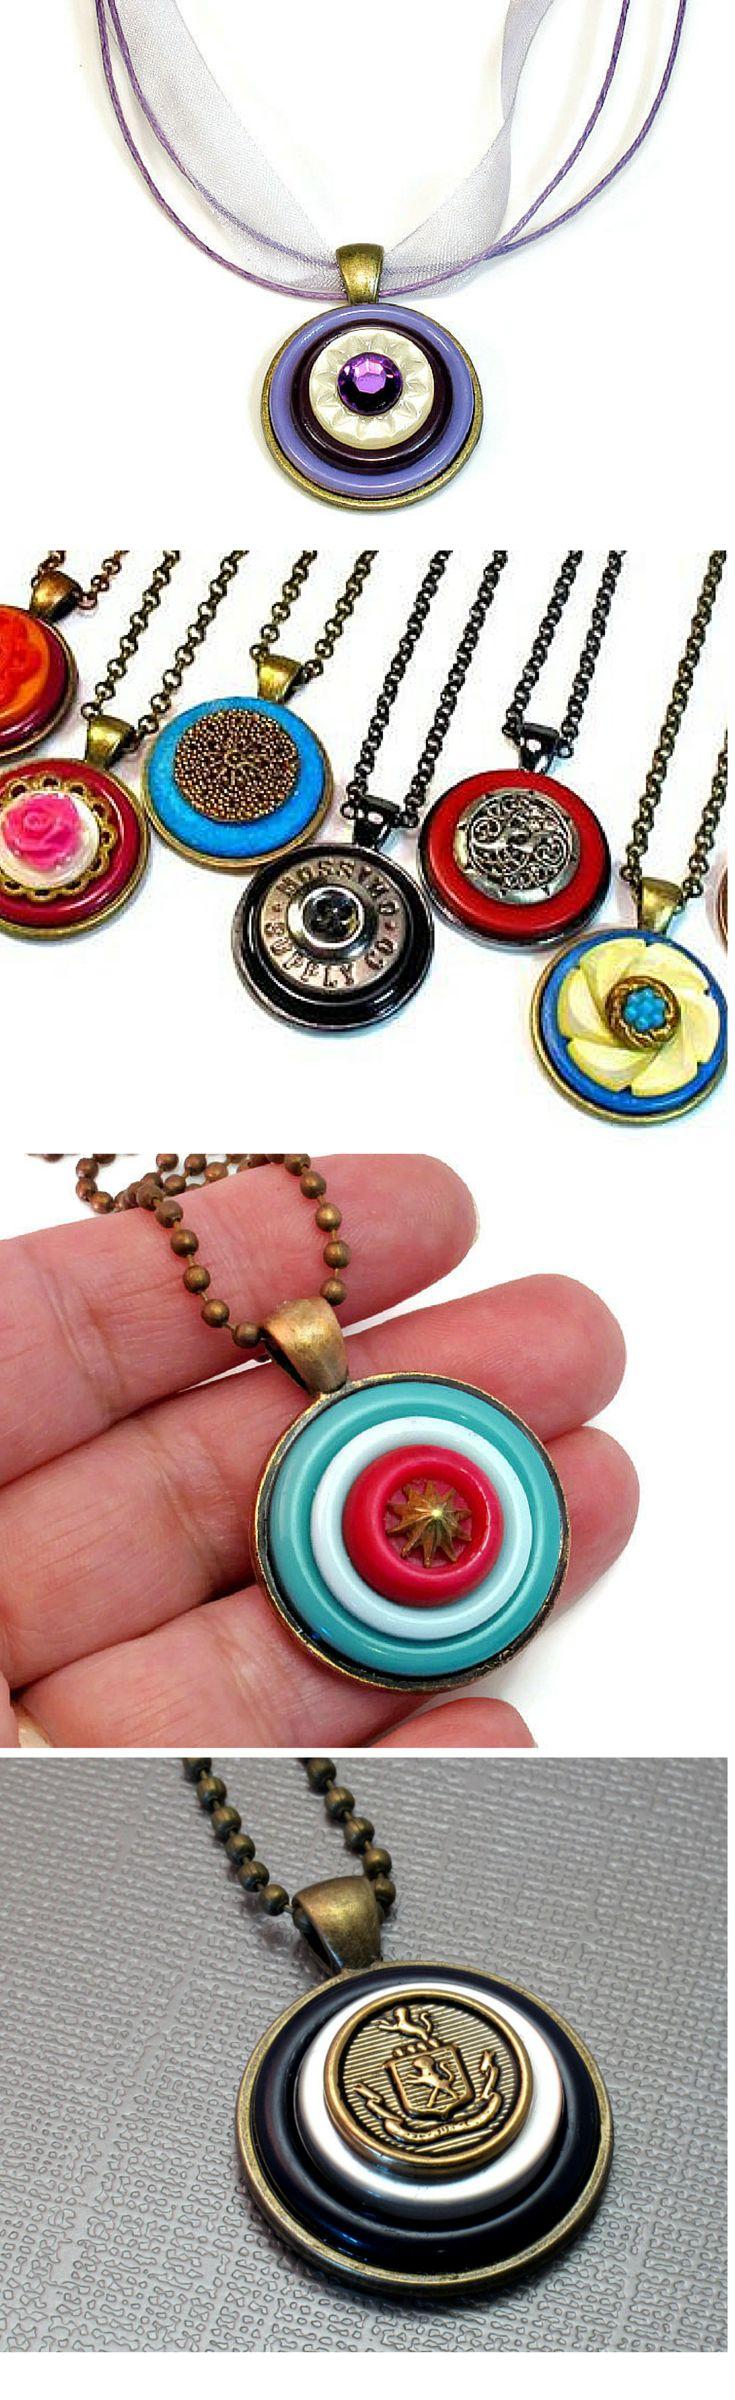 One-of-a-kind button pendants! #upcycled #jewelry on Etsy, CLICK HERE TO SEE-> https://www.etsy.com/shop/BluKatDesign?section_id=17077952&ref=shopsection_leftnav_5